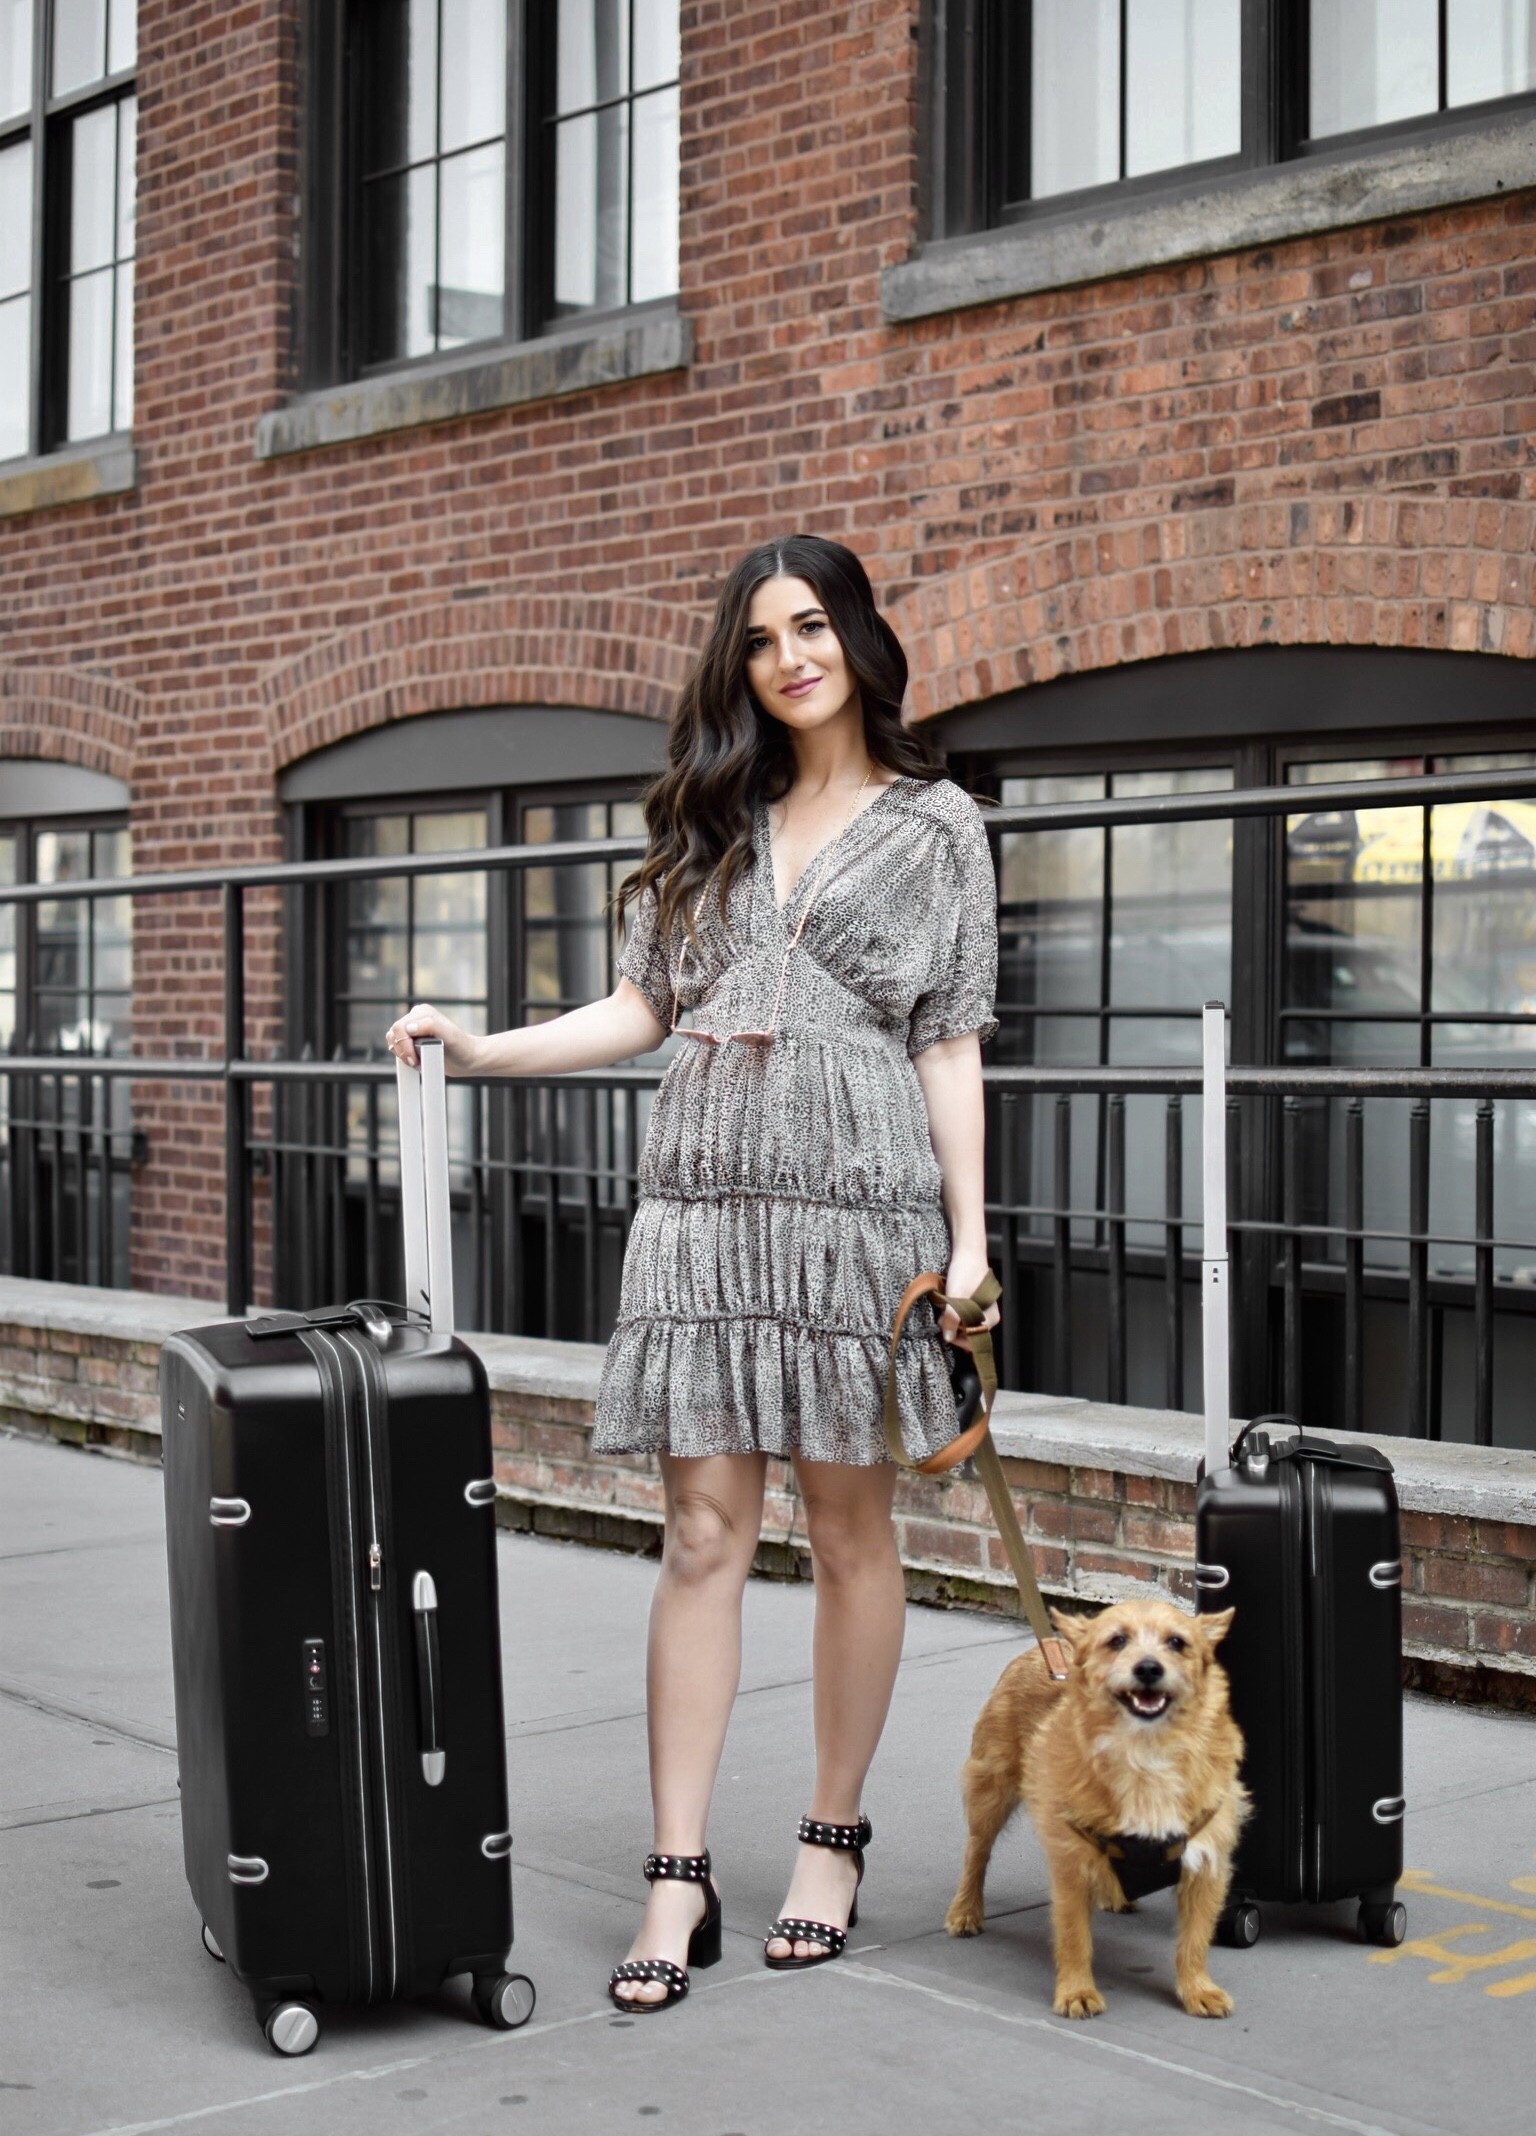 The Perfect Honeymoon Luggage Ricardo Beverly Hills Arris Collection Esther Santer Fashion Blog NYC Street Style Blogger Outfit OOTD Trendy Suitcase Compartment Interior Black Sandals Studs ASOS Convenient  Vacation New York City Skyline Dumbo Europe.jpg